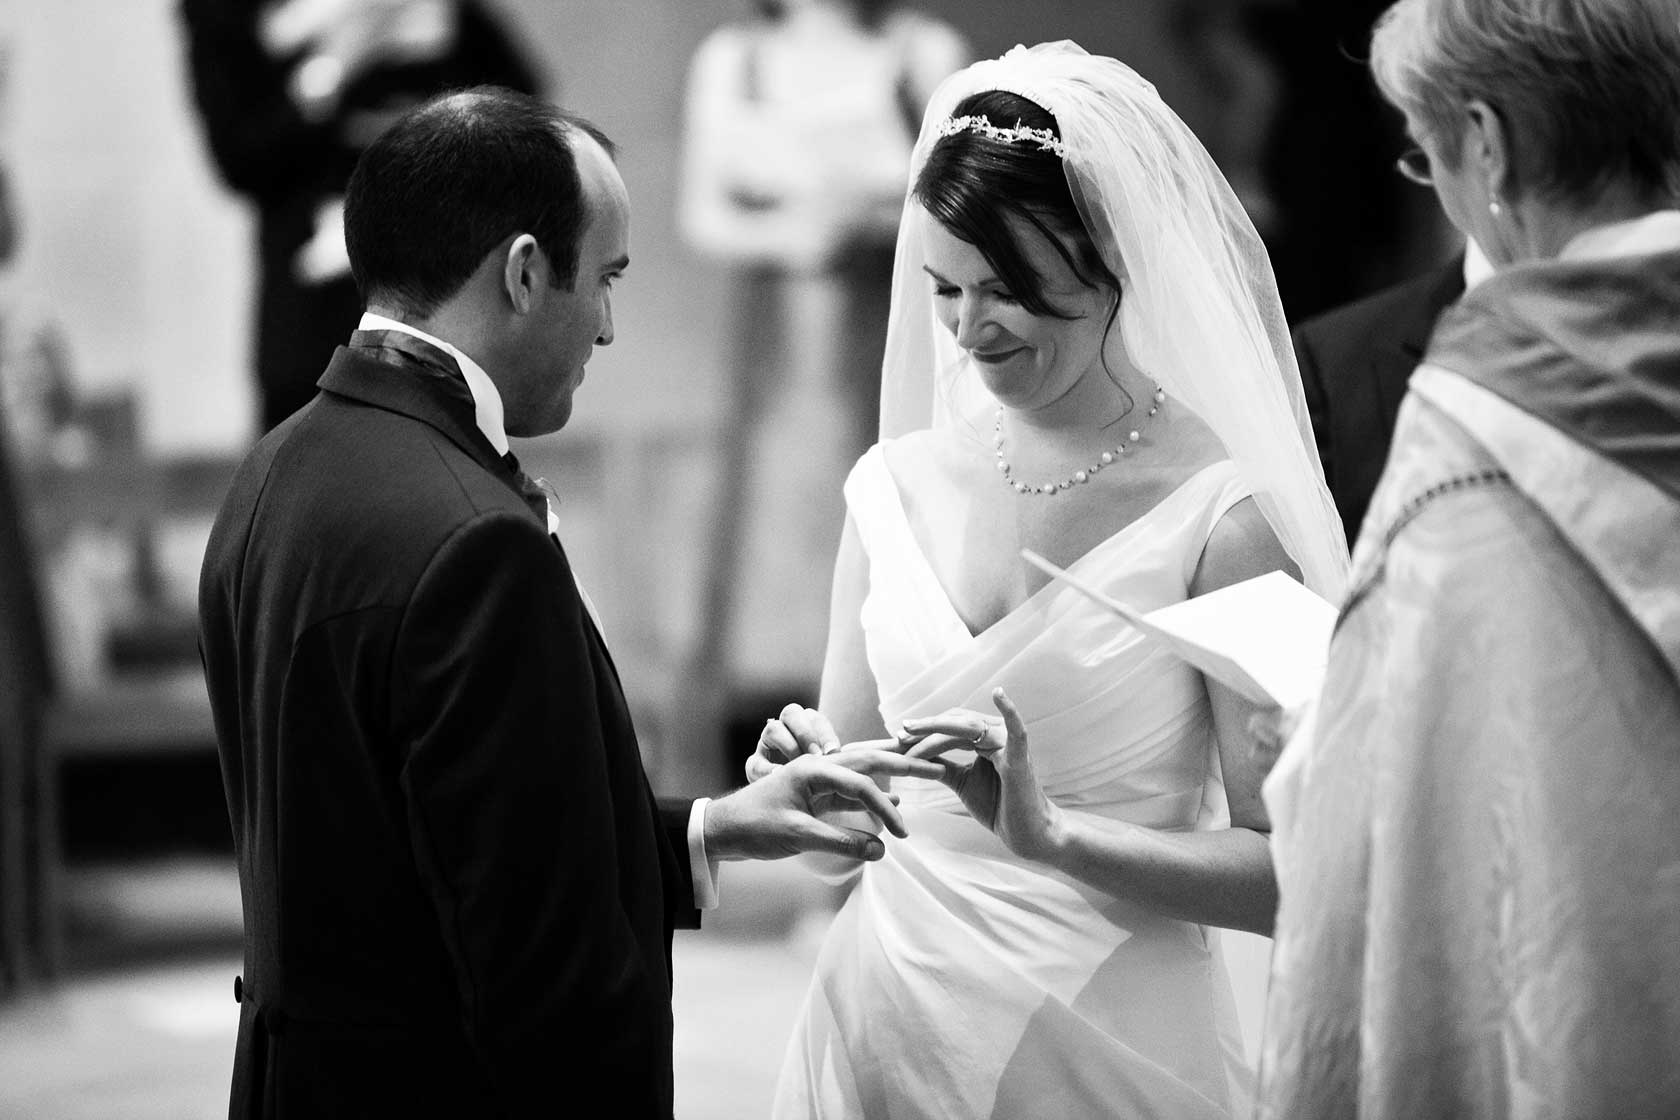 Reportage Wedding Photography at Guildford Cathedral